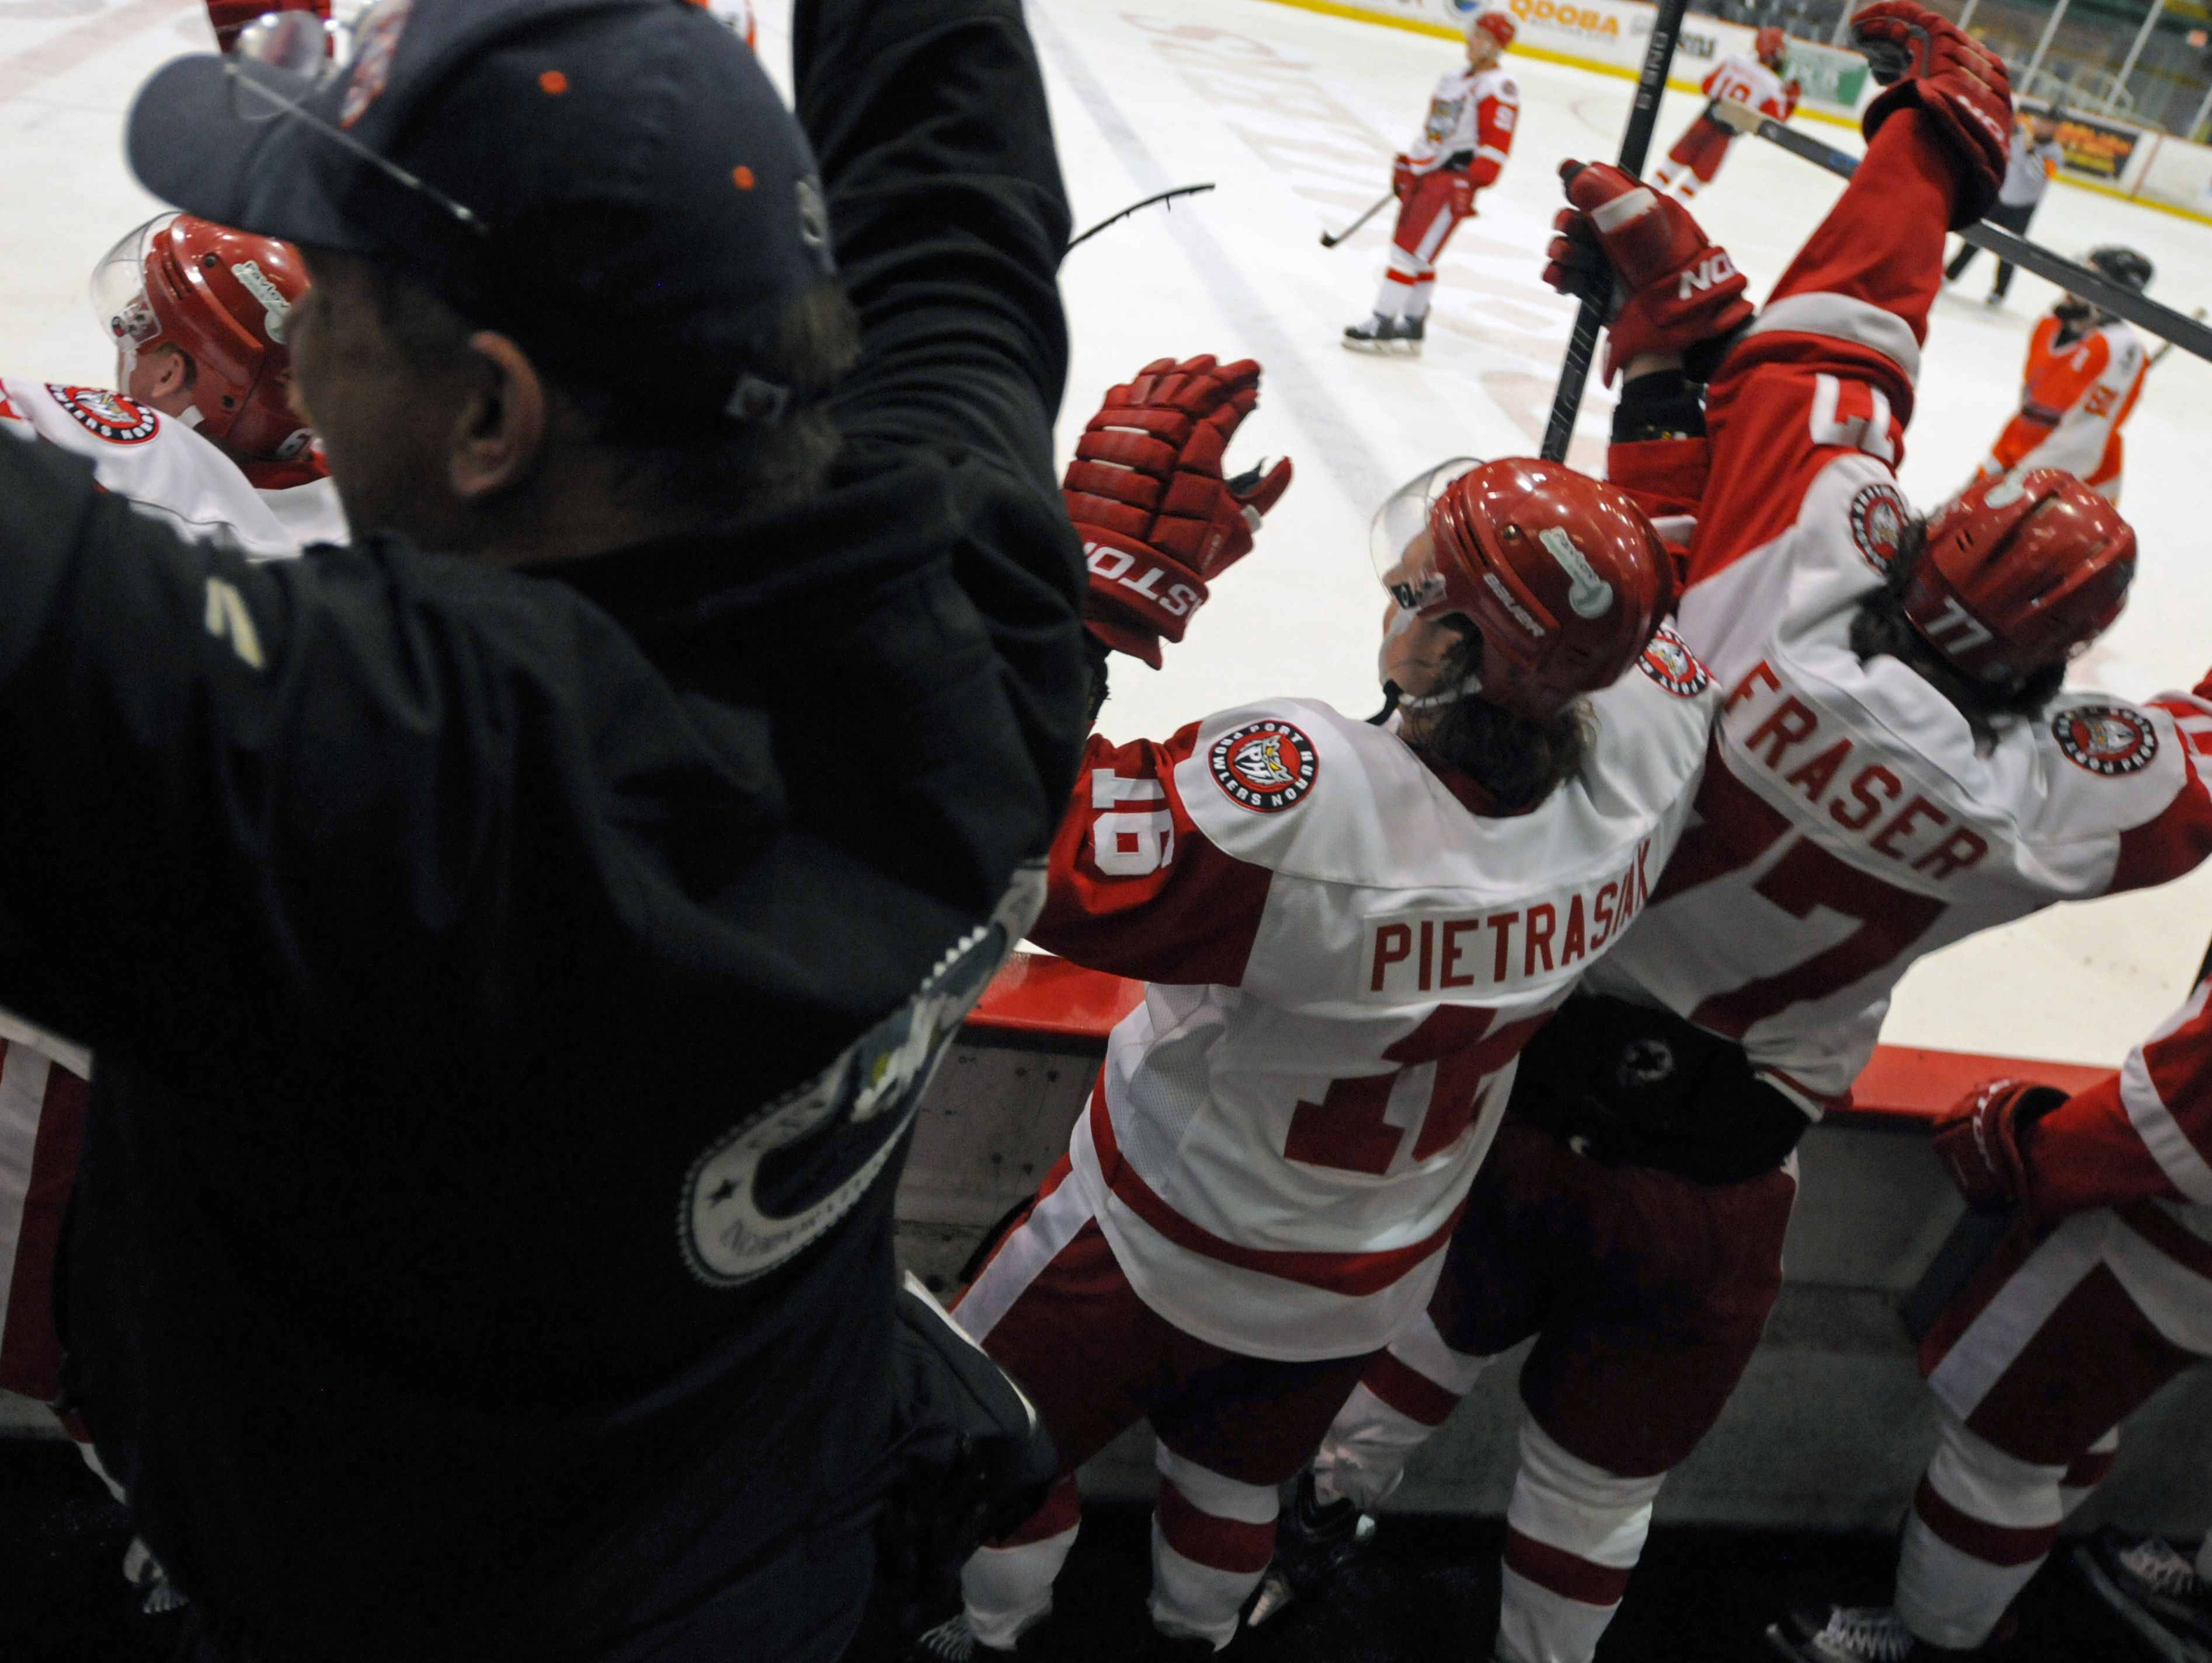 Members of the Port Huron Prowlers celebrate a 6-3 win Sunday, April 10, during an FHL semifinal playoff game at McMorran Arena